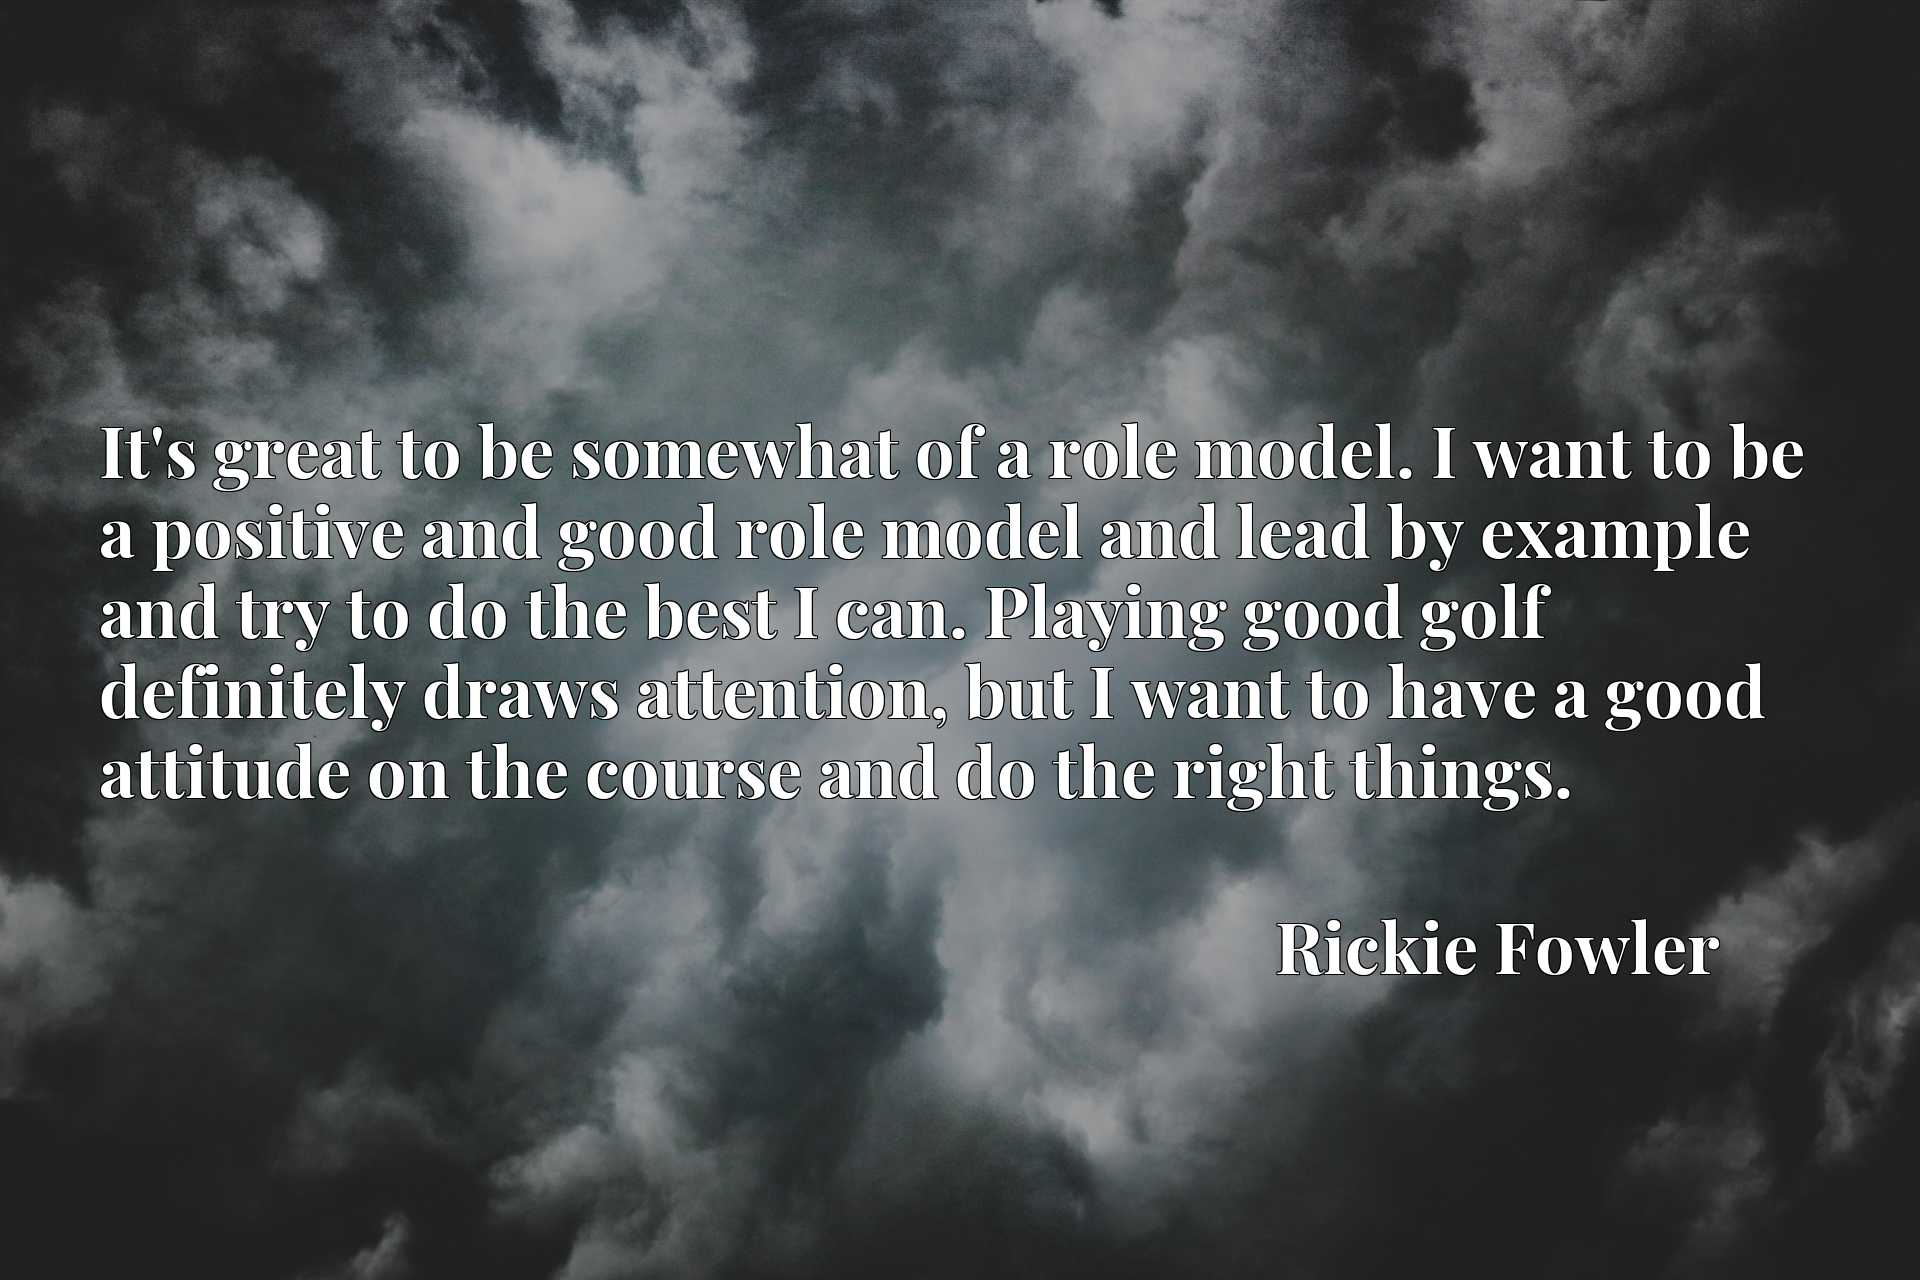 It's great to be somewhat of a role model. I want to be a positive and good role model and lead by example and try to do the best I can. Playing good golf definitely draws attention, but I want to have a good attitude on the course and do the right things.